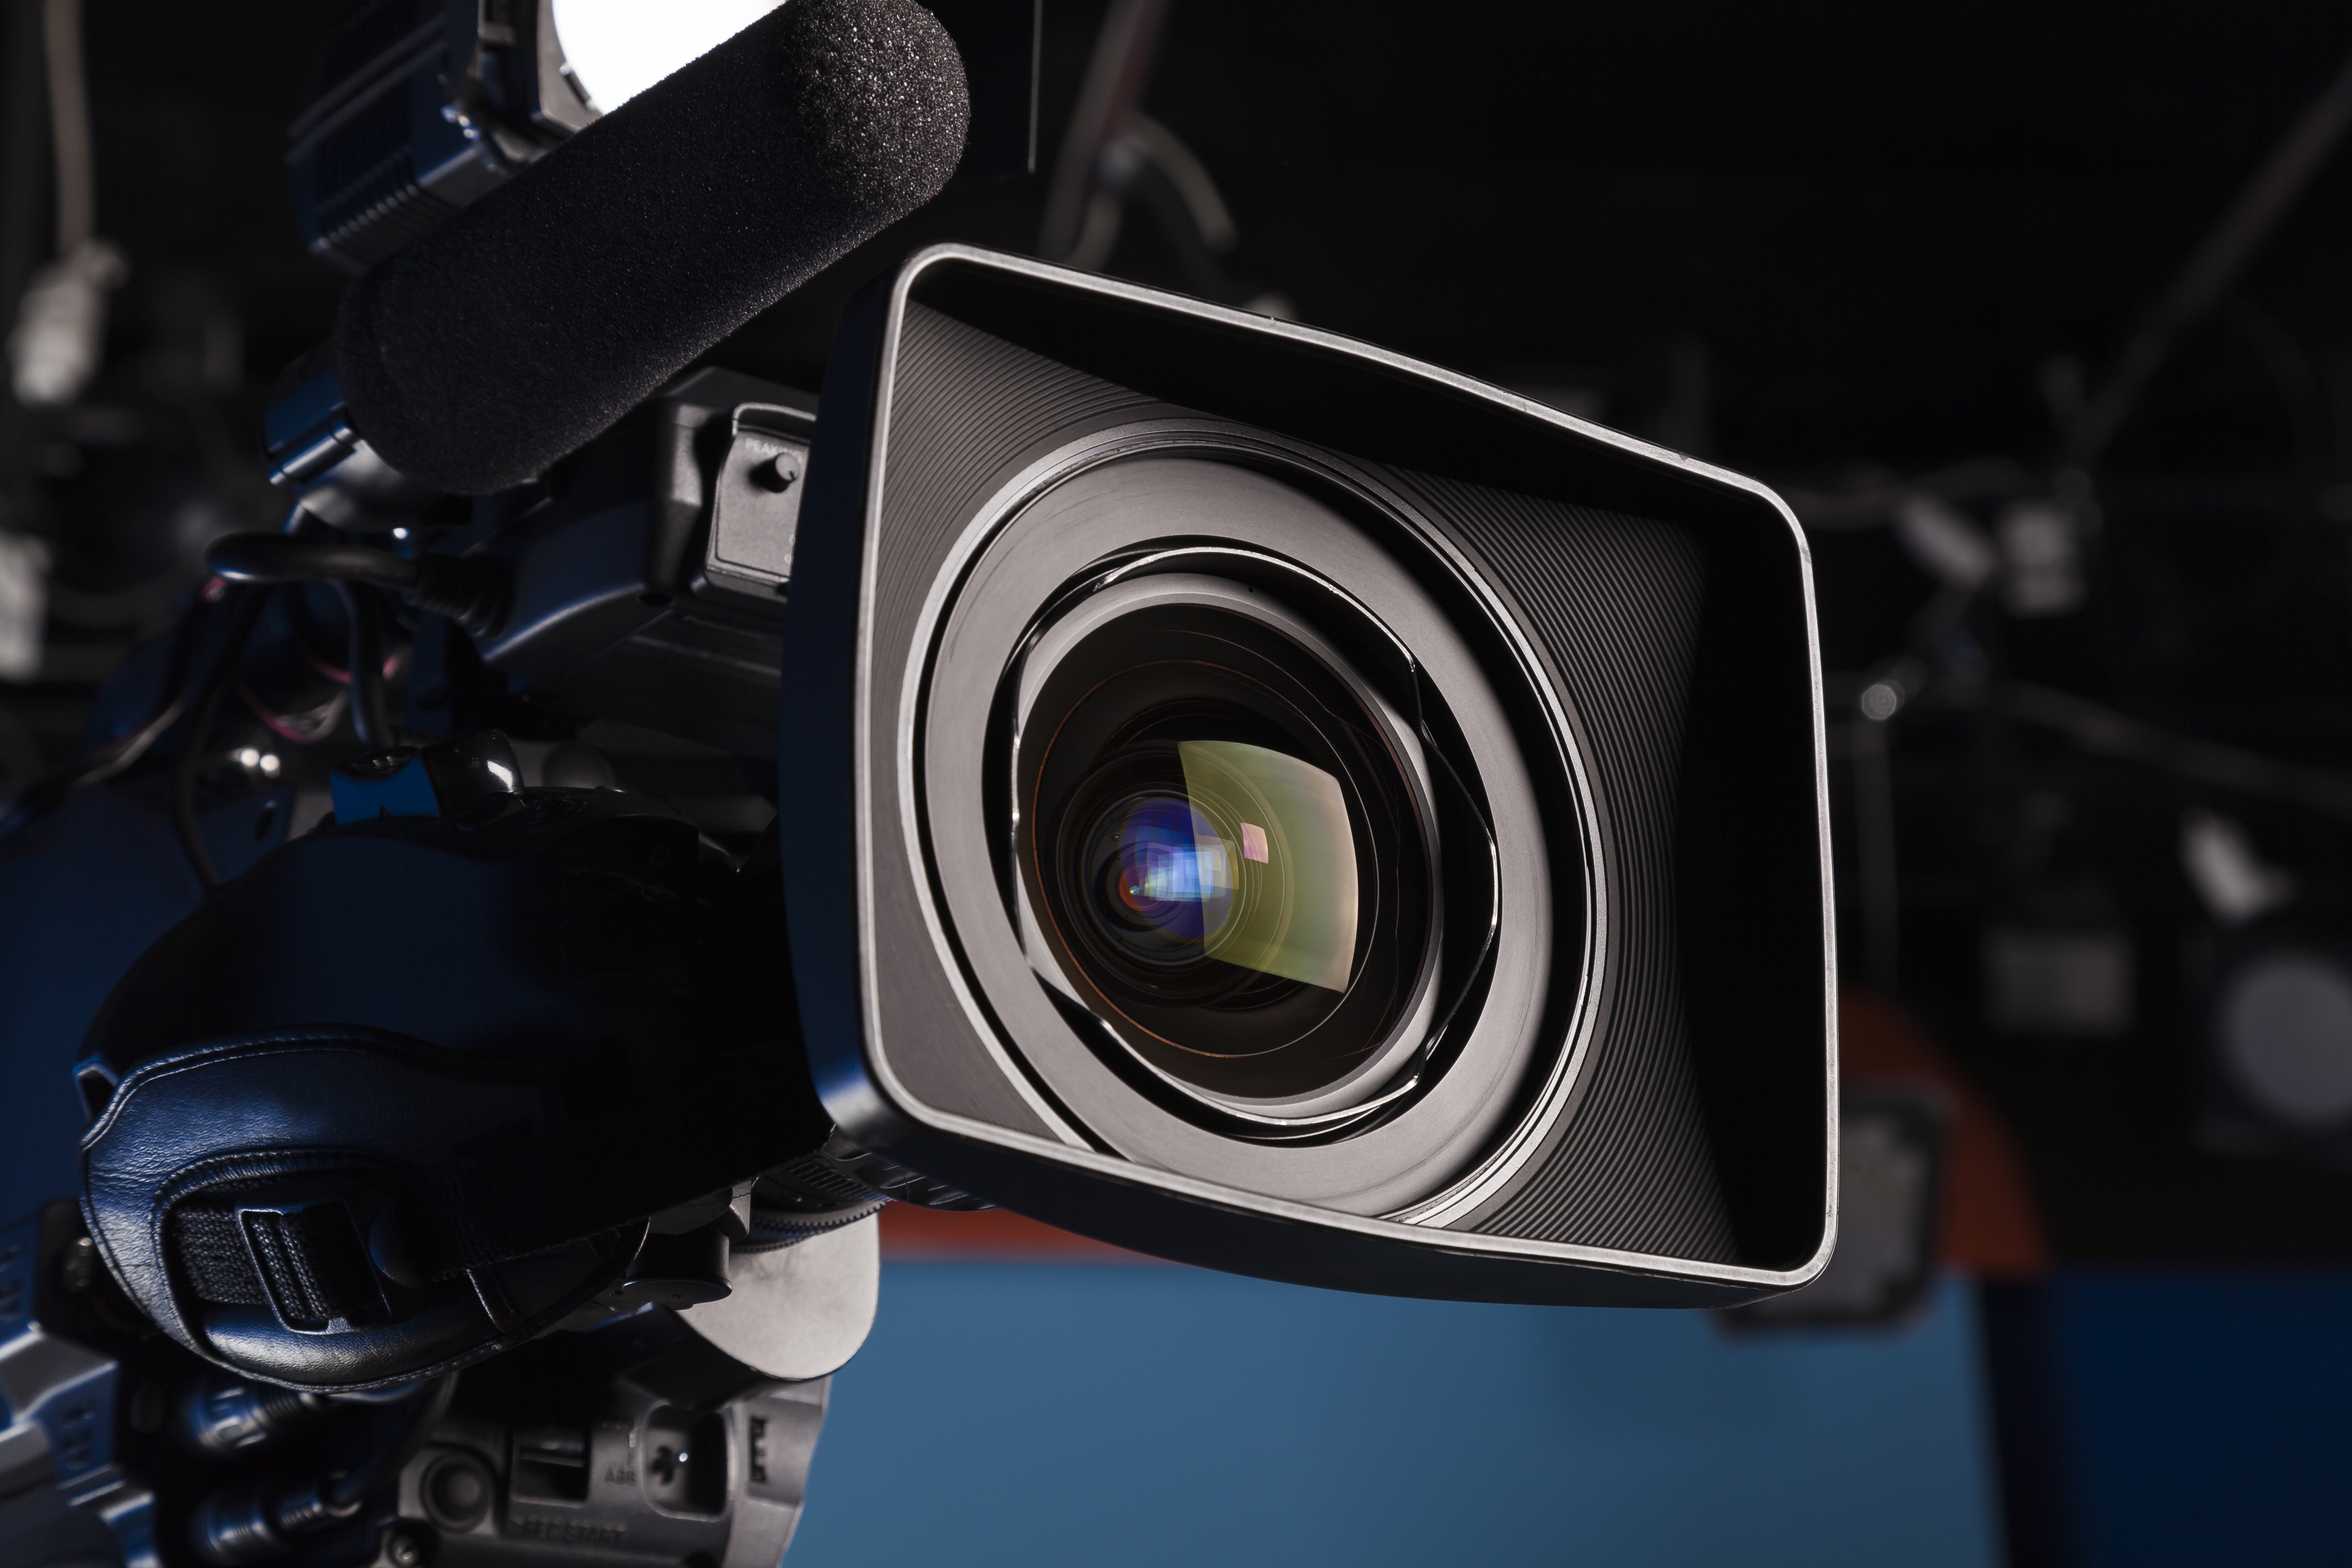 lens, optic, camera, television, camcorders, microphone, equipment, focus, media, professional, studio, digital, reflection, film, contrast, light, recording, video, zoom